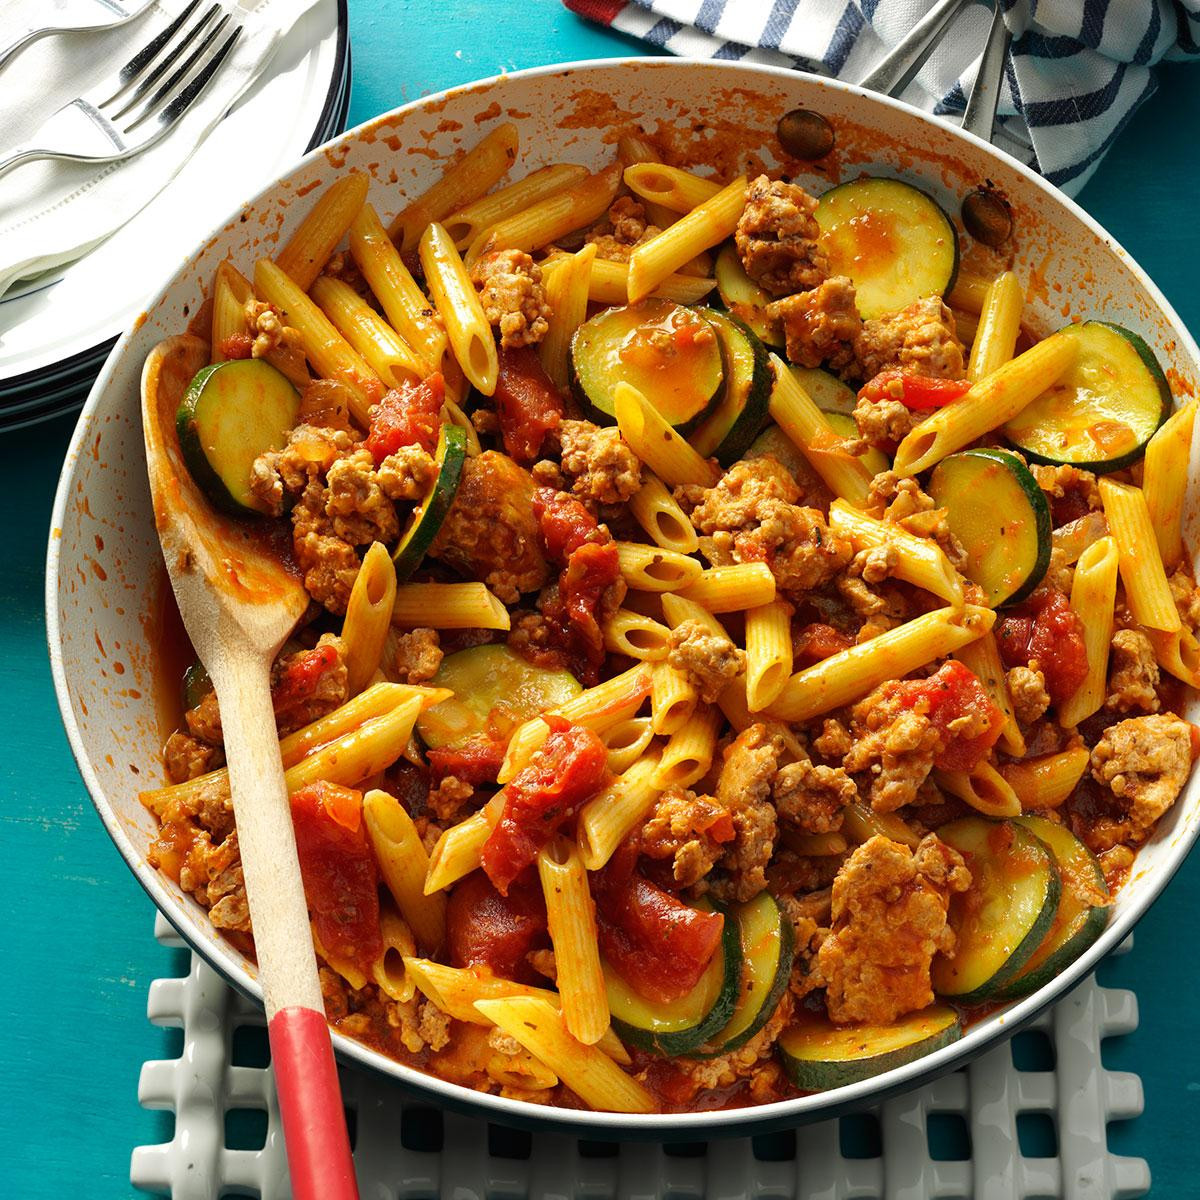 What To Make With Ground Pork  Jiffy Ground Pork Skillet Recipe